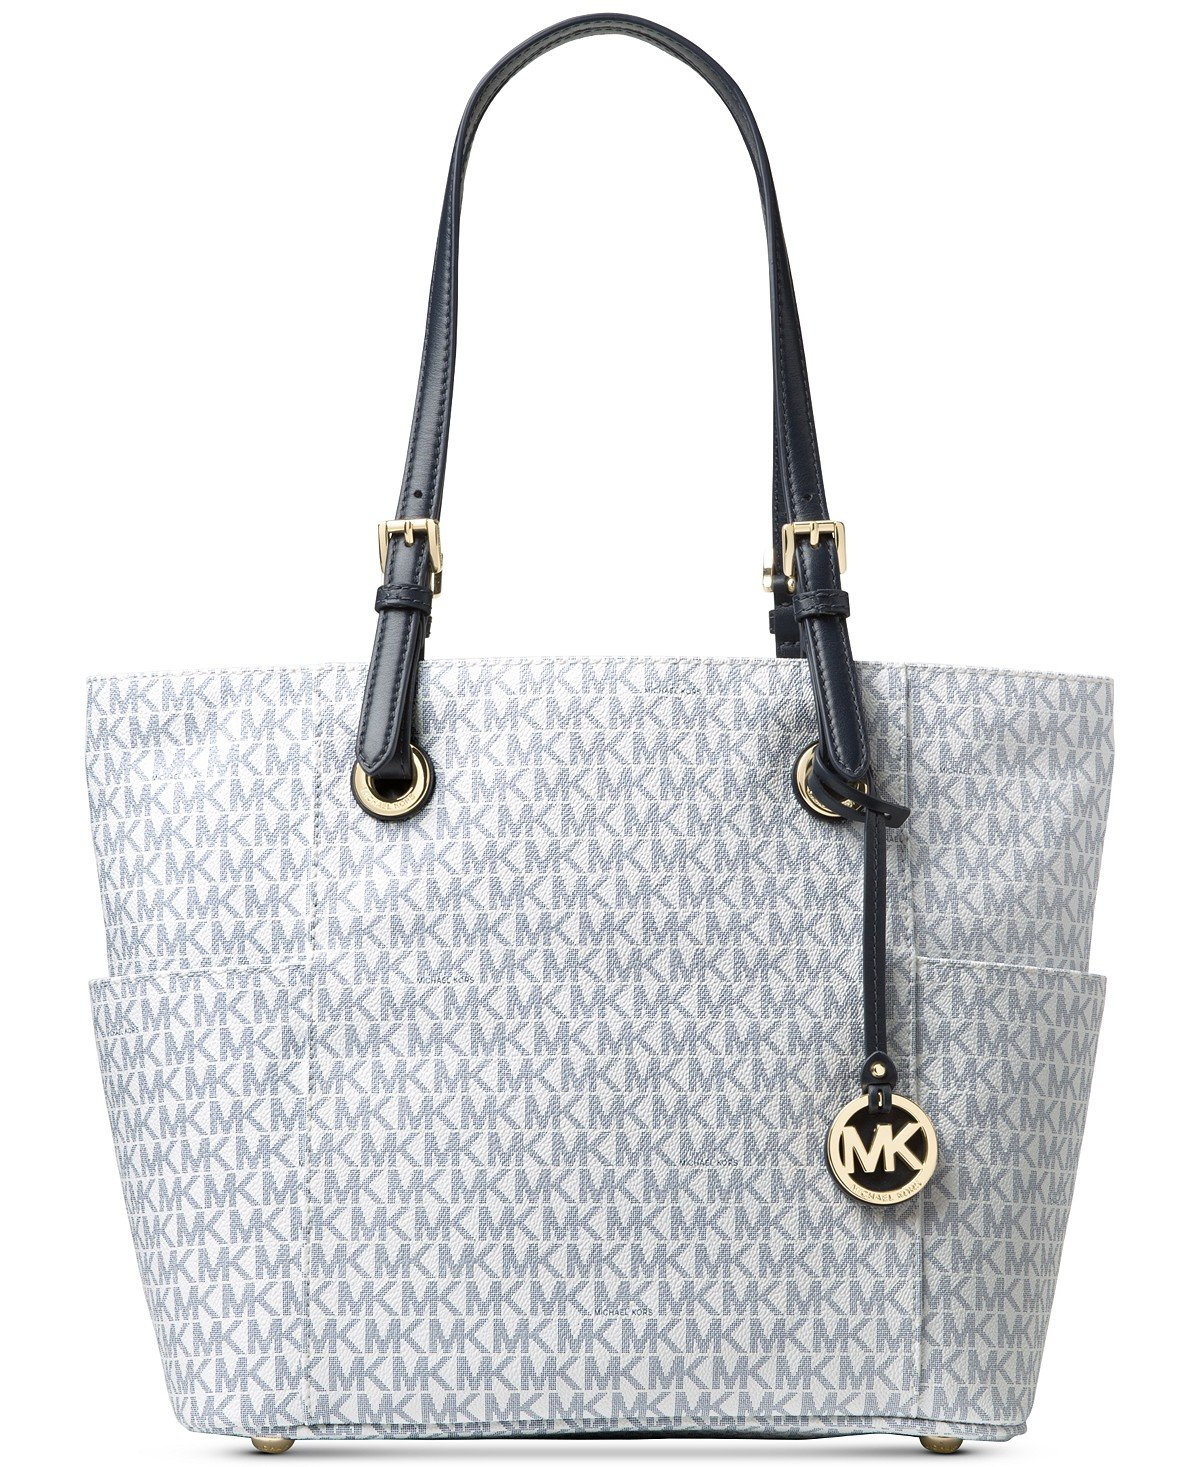 Michael Kors Women's Jet Set Travel Small Logo Tote Bag (Optic White/Navy)